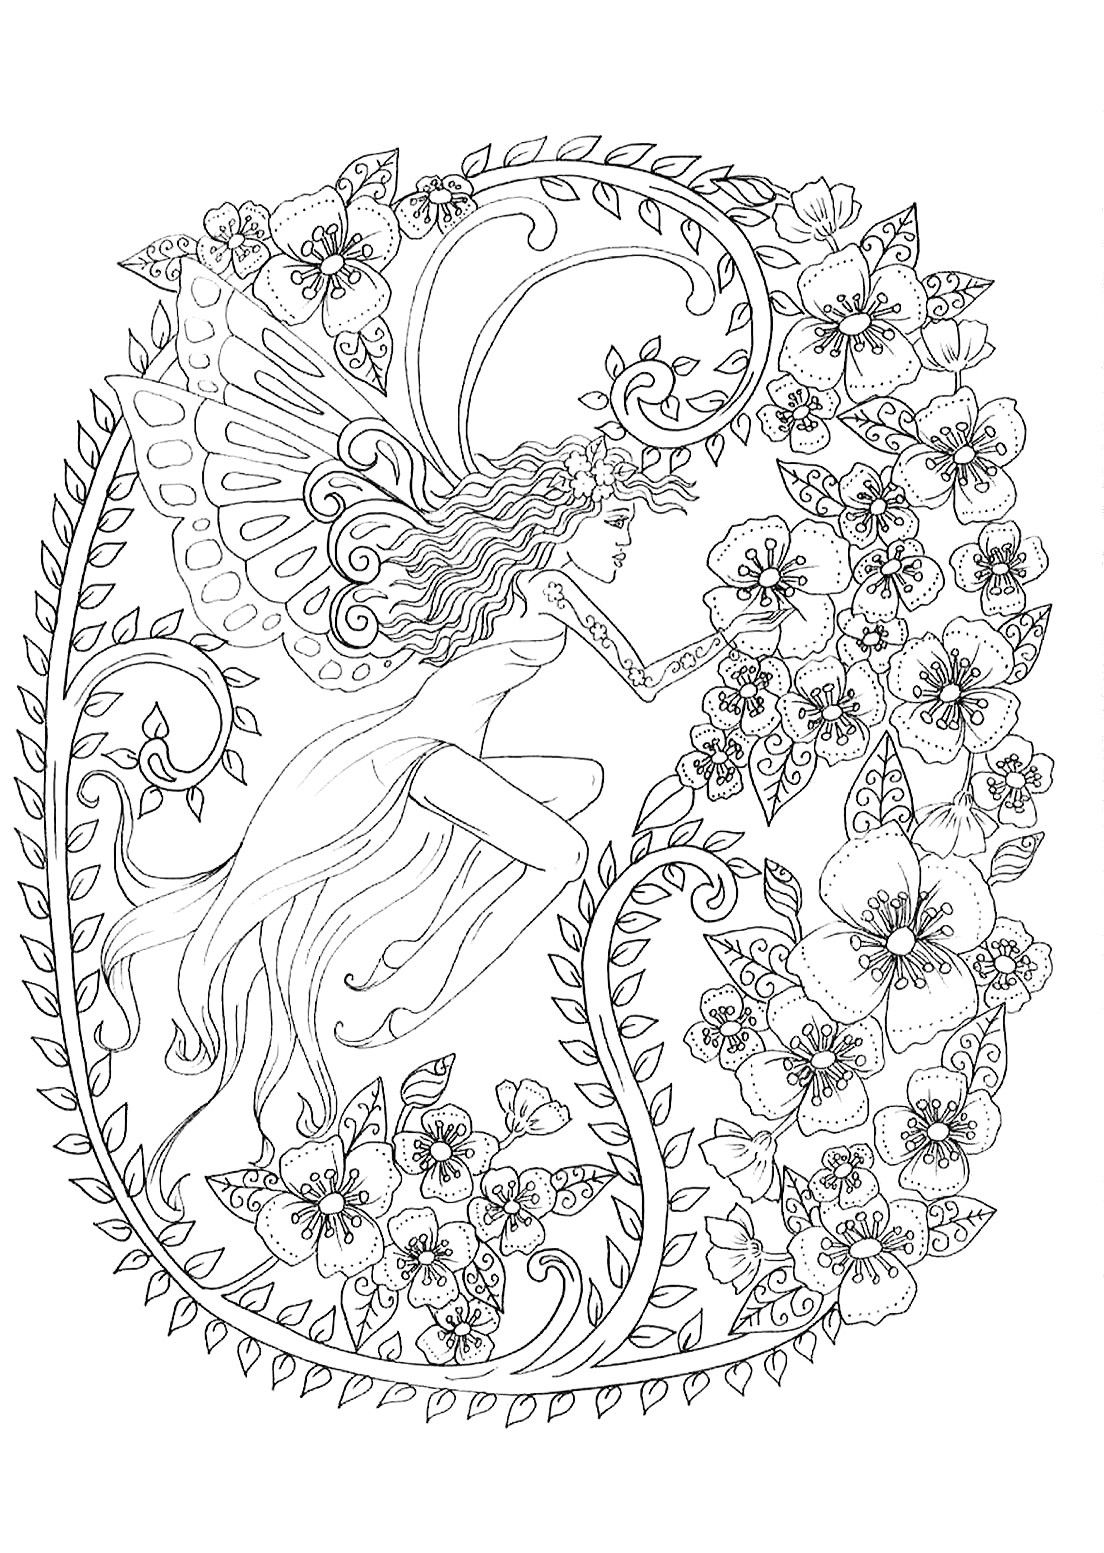 Pin By Elisabeth Quisenberry On Color Her Pretty Angel Coloring Pages Cute Coloring Pages Cool Coloring Pages